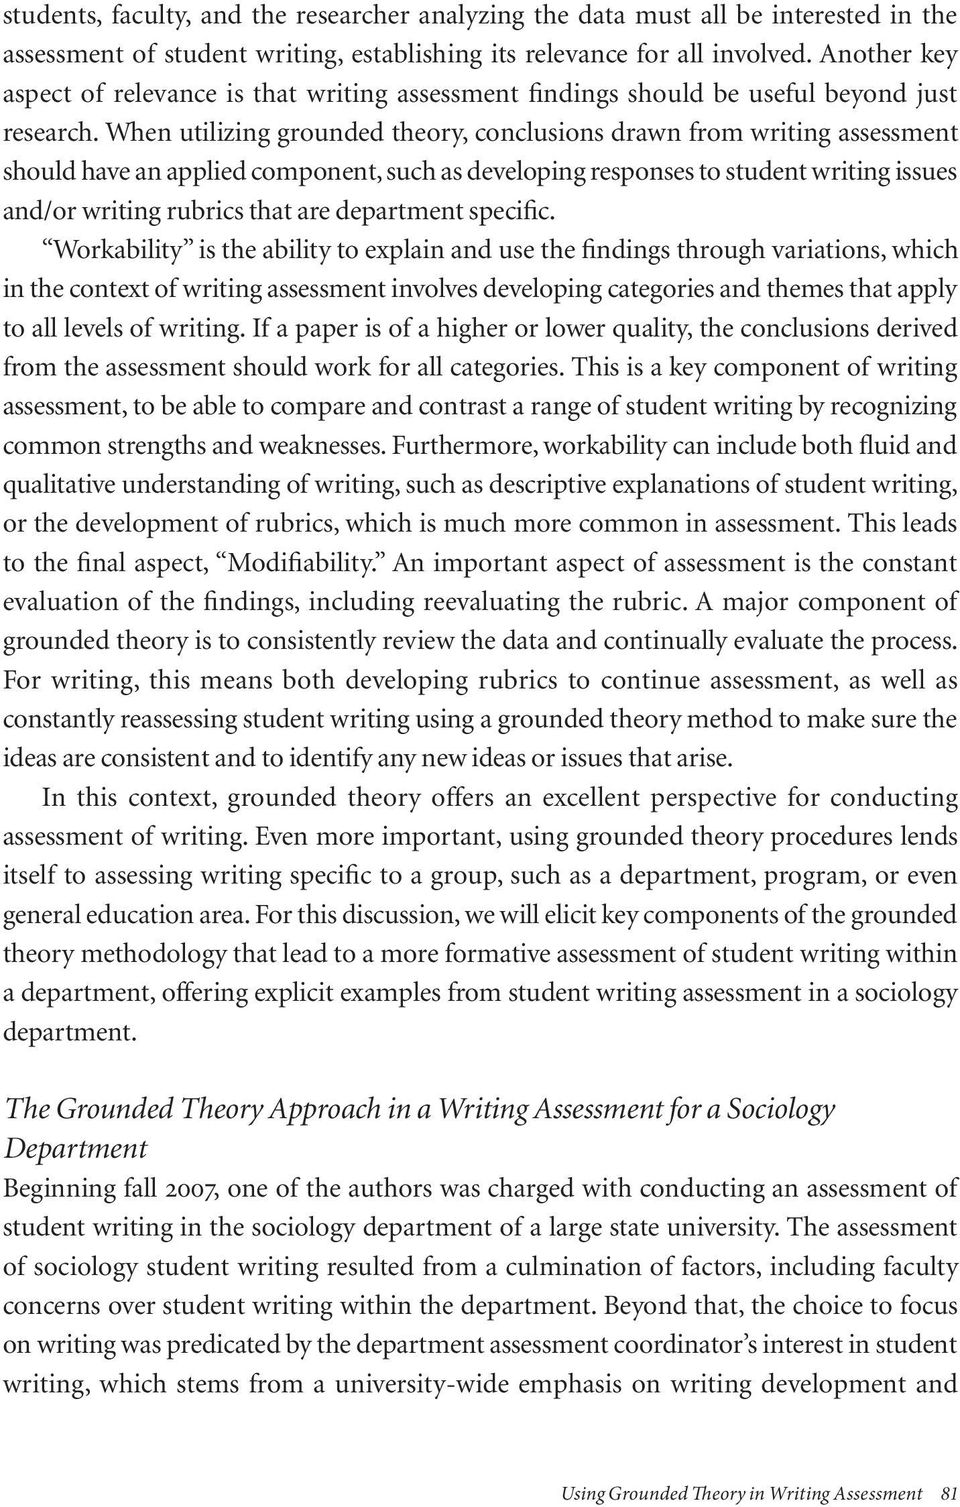 When utilizing grounded theory, conclusions drawn from writing assessment should have an applied component, such as developing responses to student writing issues and/or writing rubrics that are